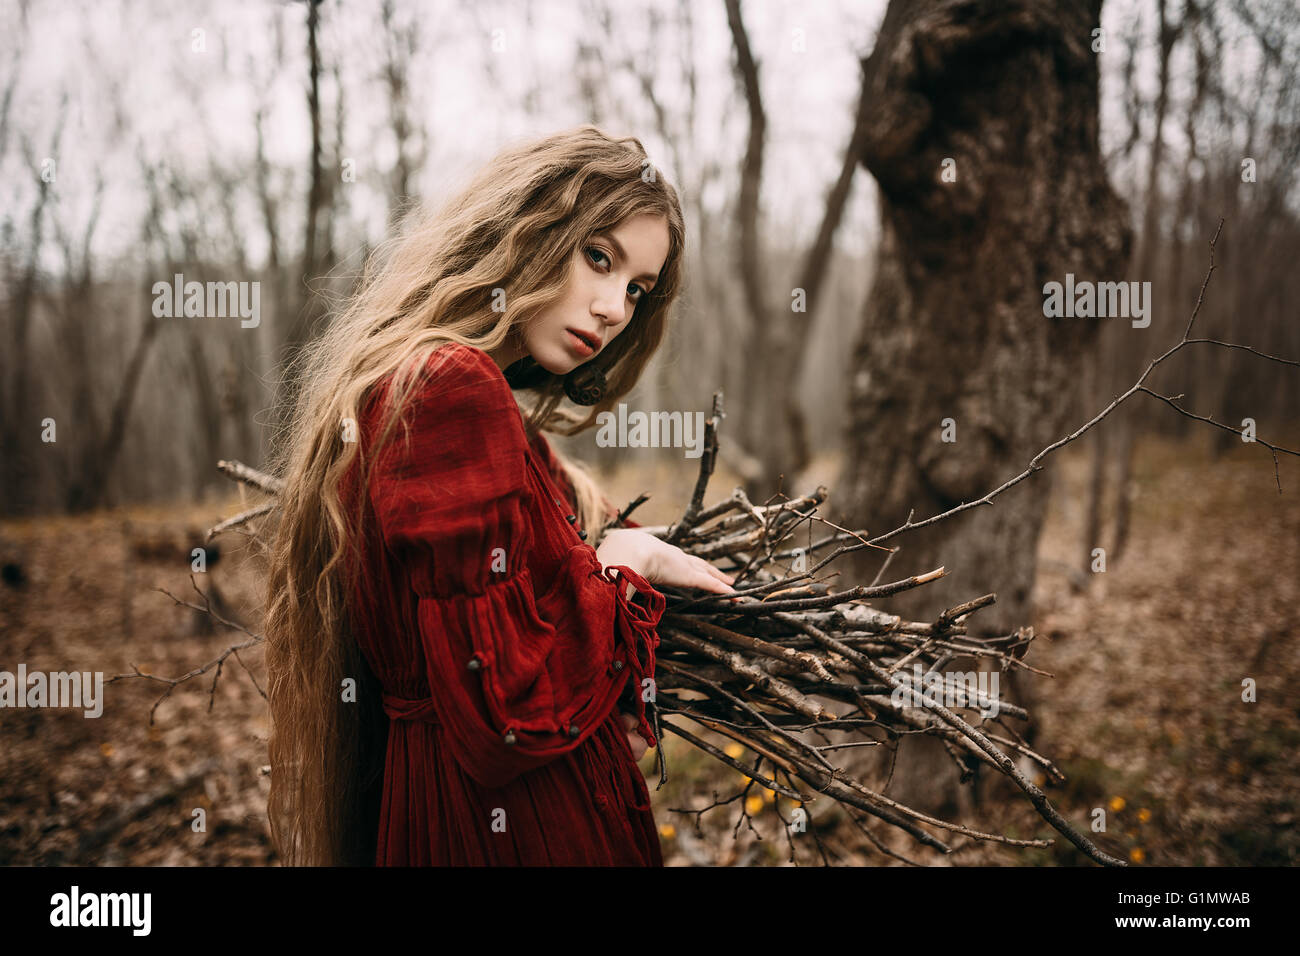 Witch in forest - Stock Image